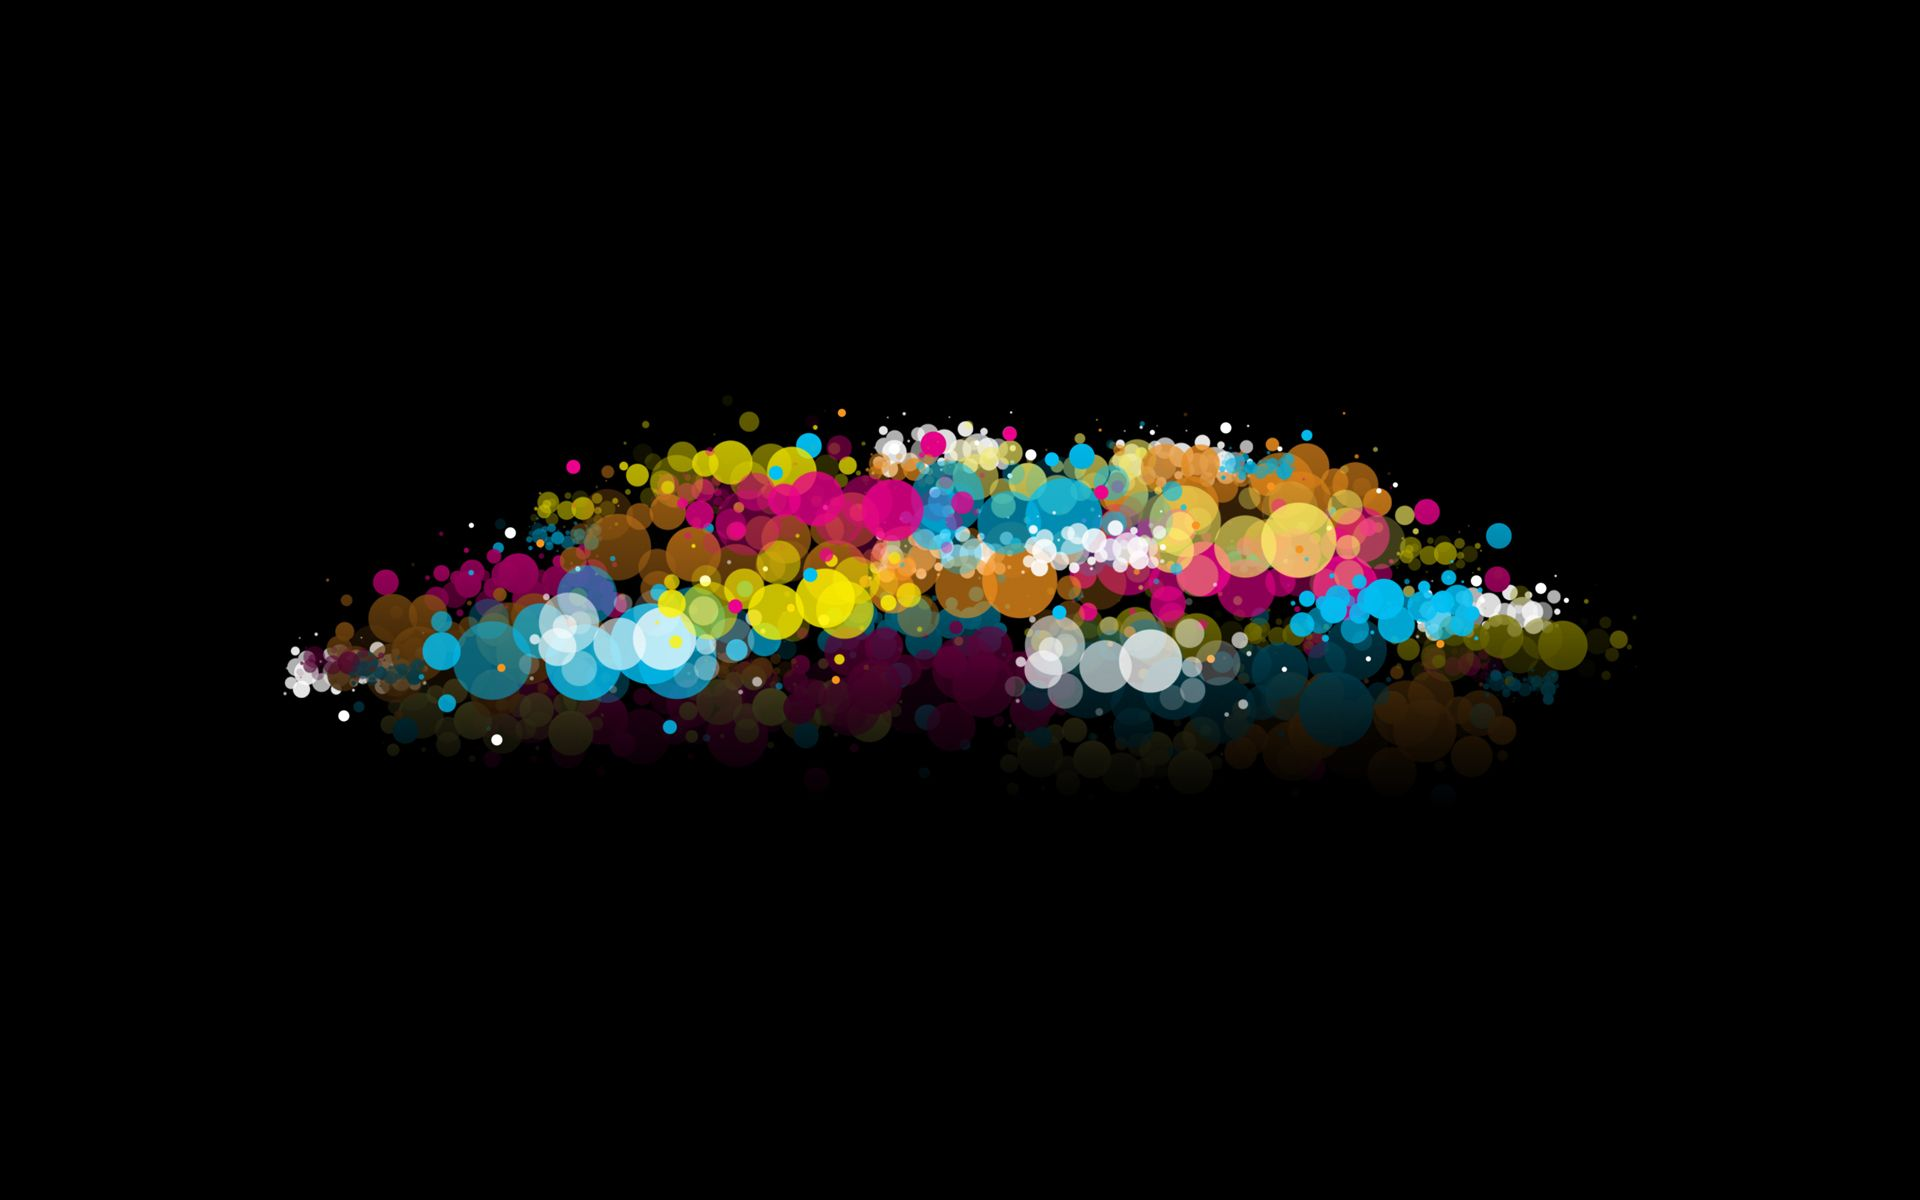 abstraction colorful black spots background hd wallpaper by billgate